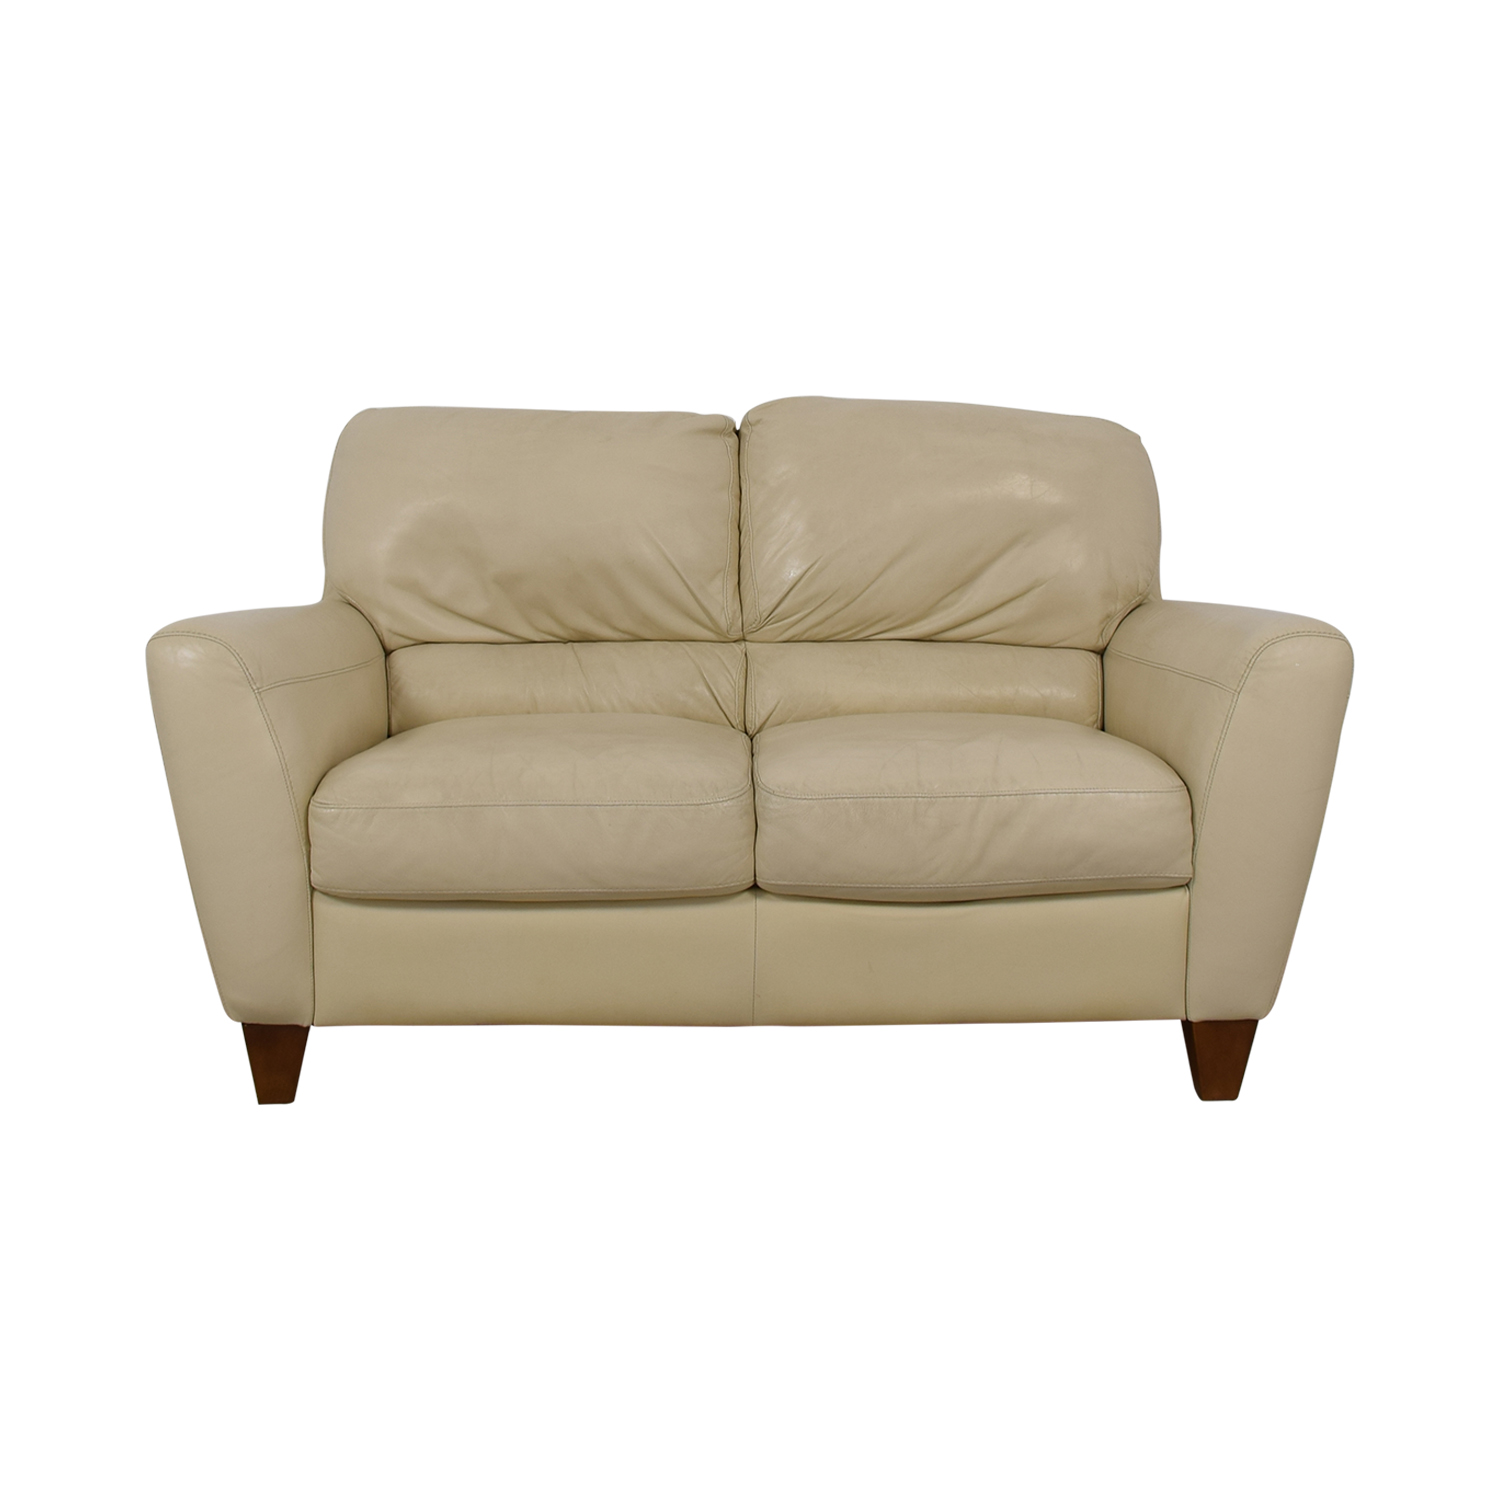 Macy's Macy's White Two-Cushion Loveseat price